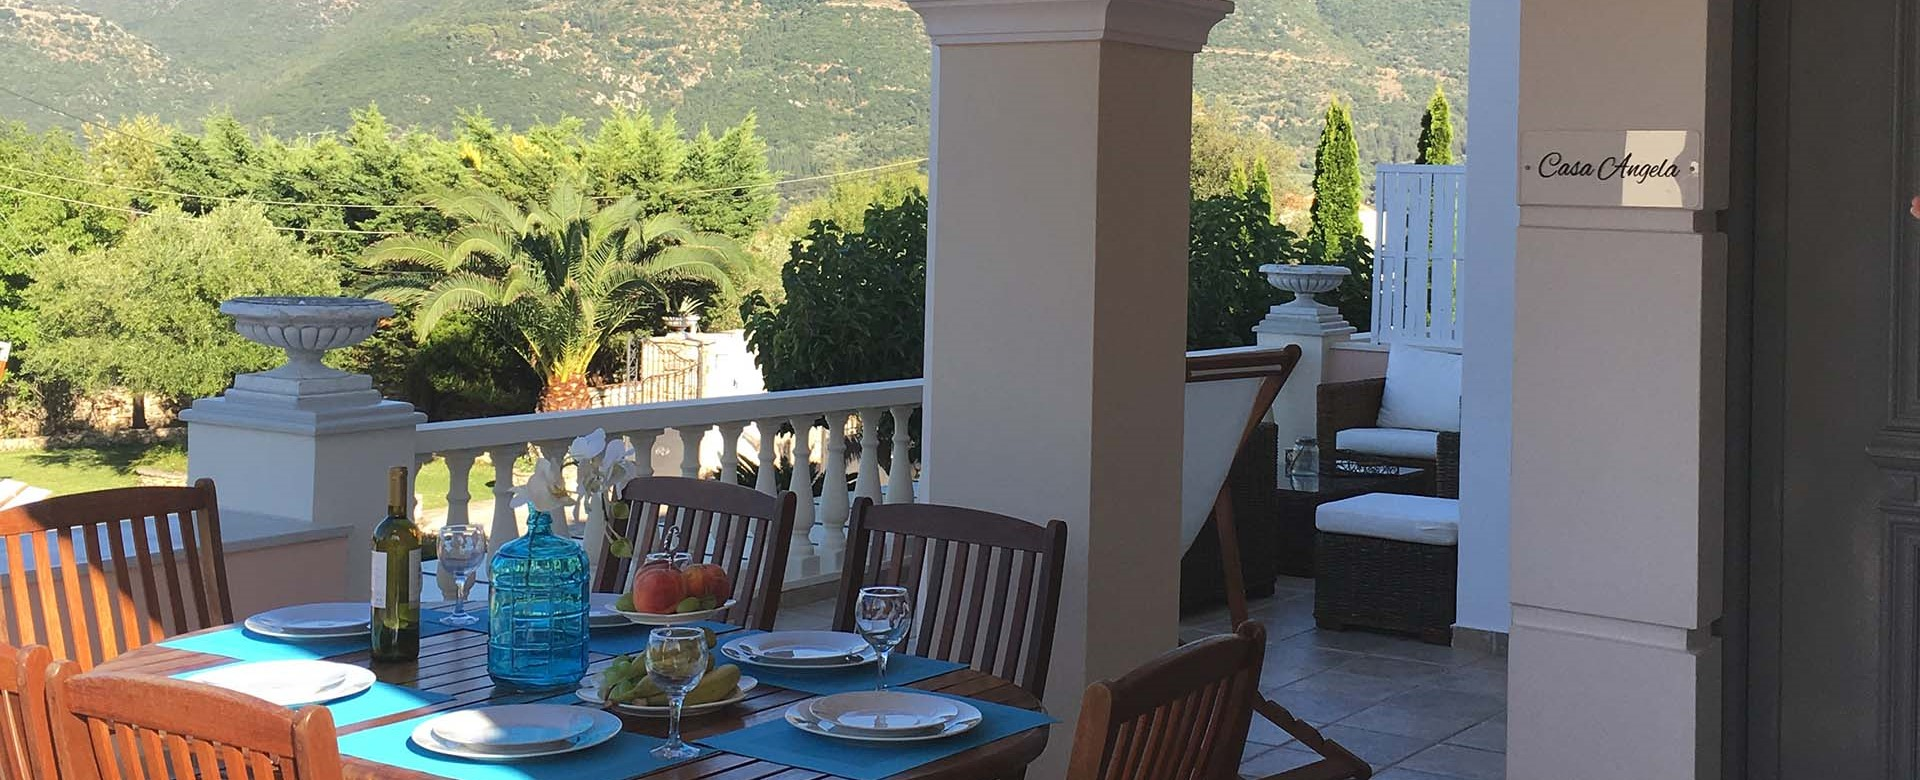 Al fresco dining with mountain views on the veranda at Casa Angela, Melissani Apartments, Karavomilos, Kefalonia, Greek Islands